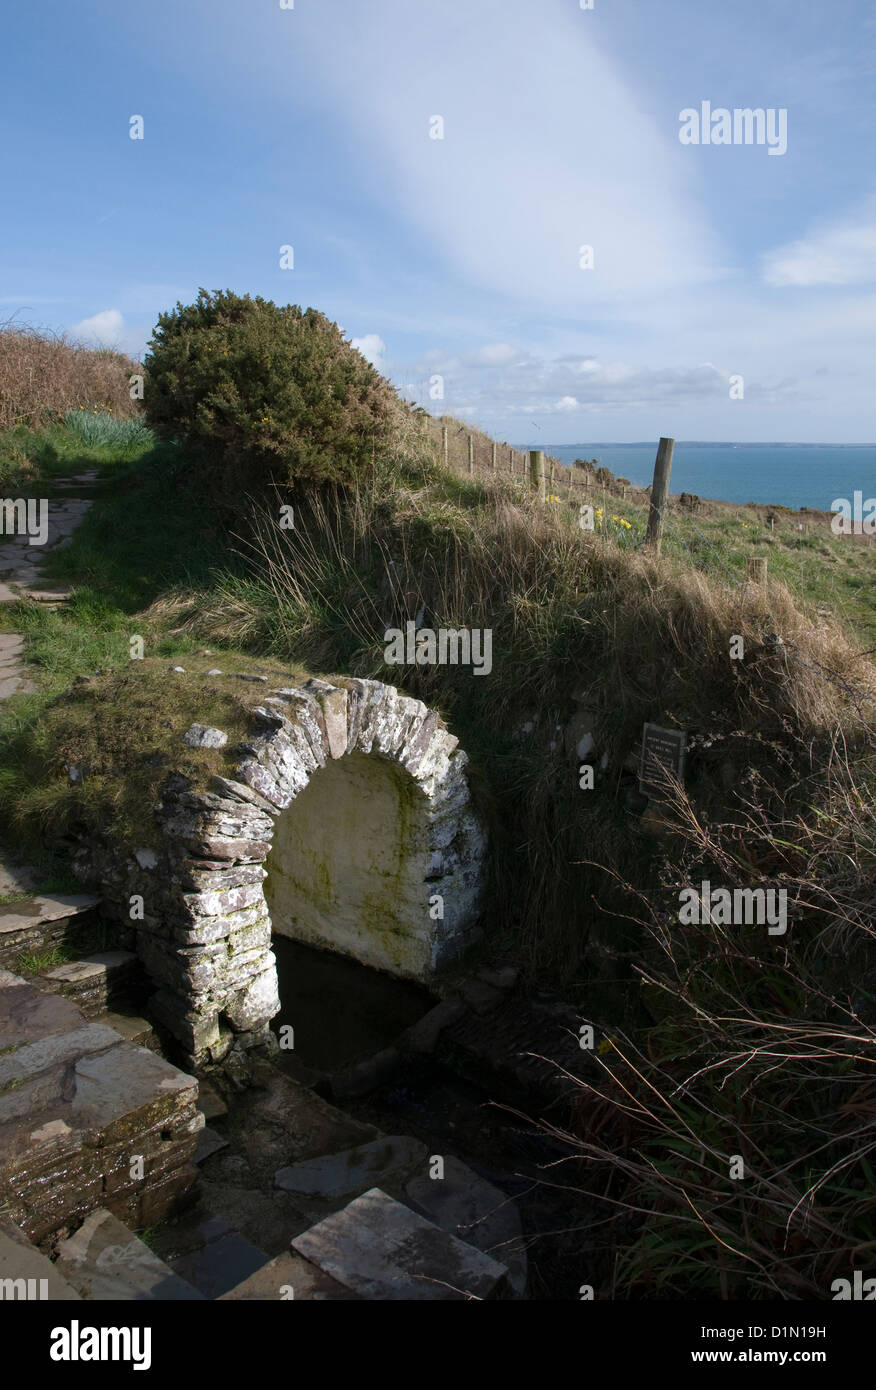 St Non's Well Ancient Monument St Davids Pembrokeshire Wales - Stock Image